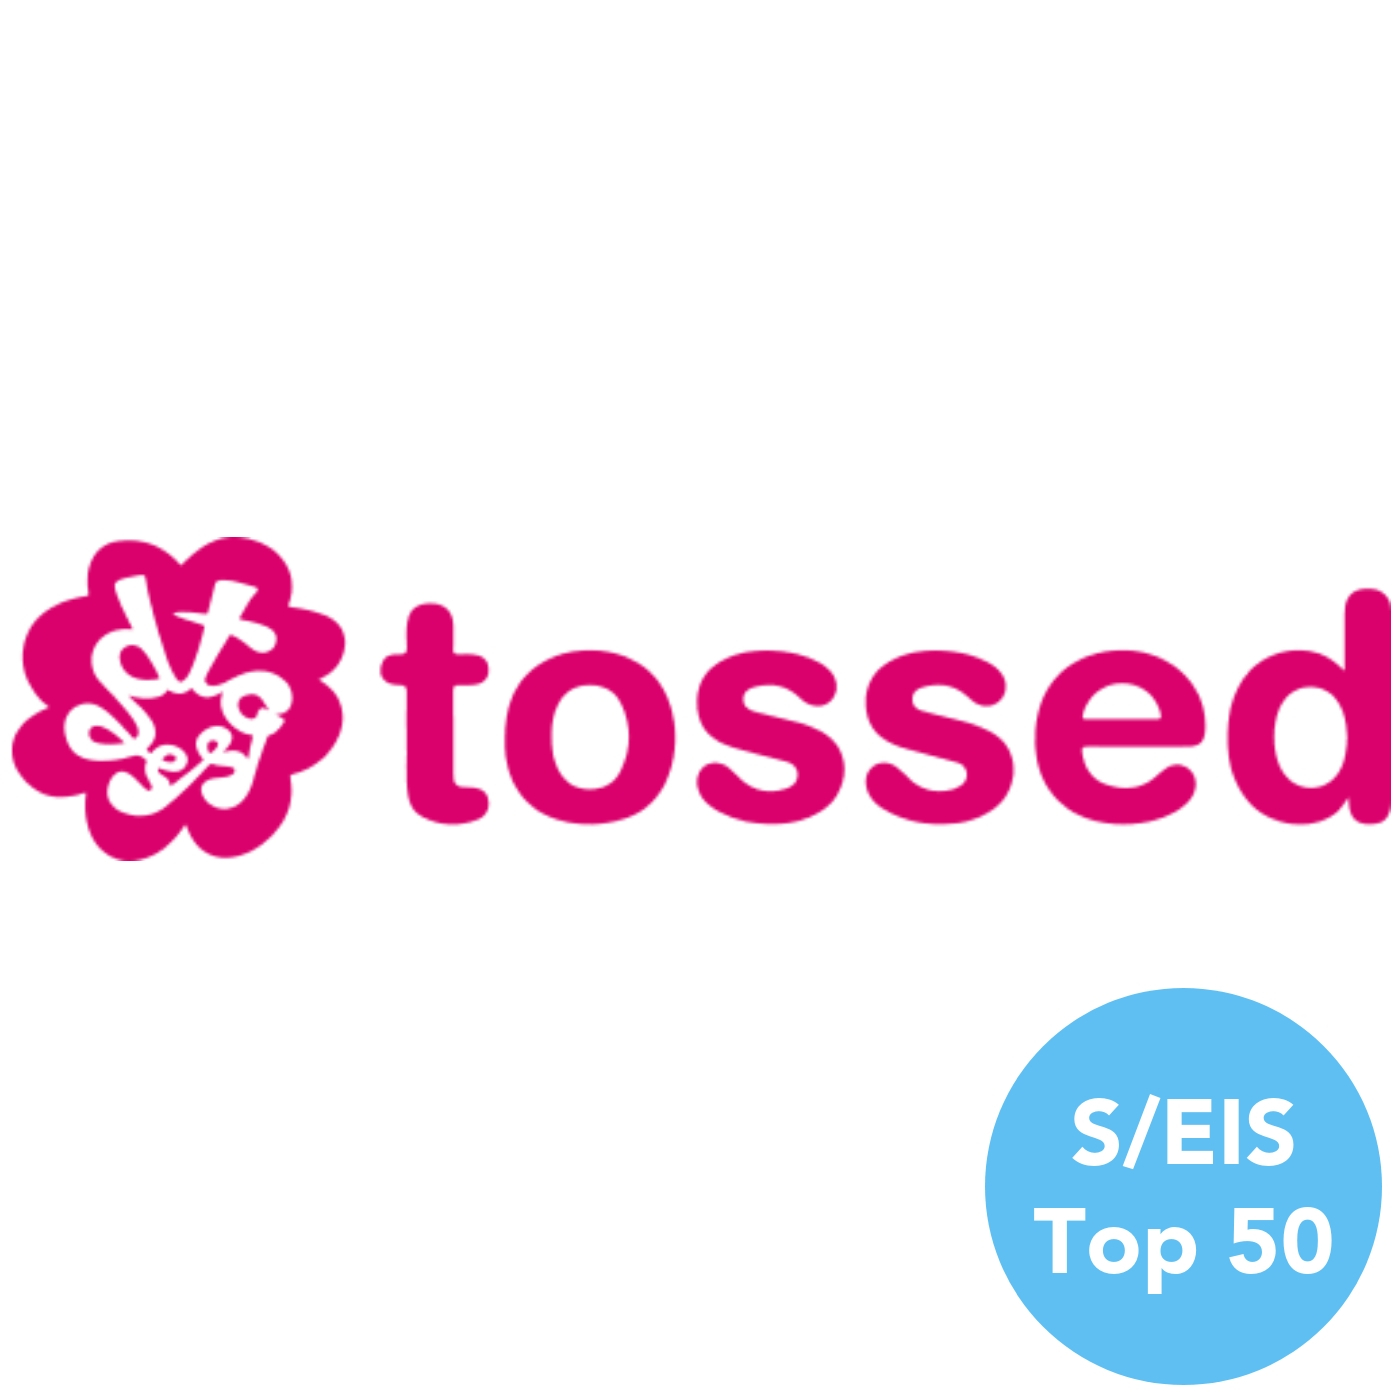 Tossed | S/EIS Top 50